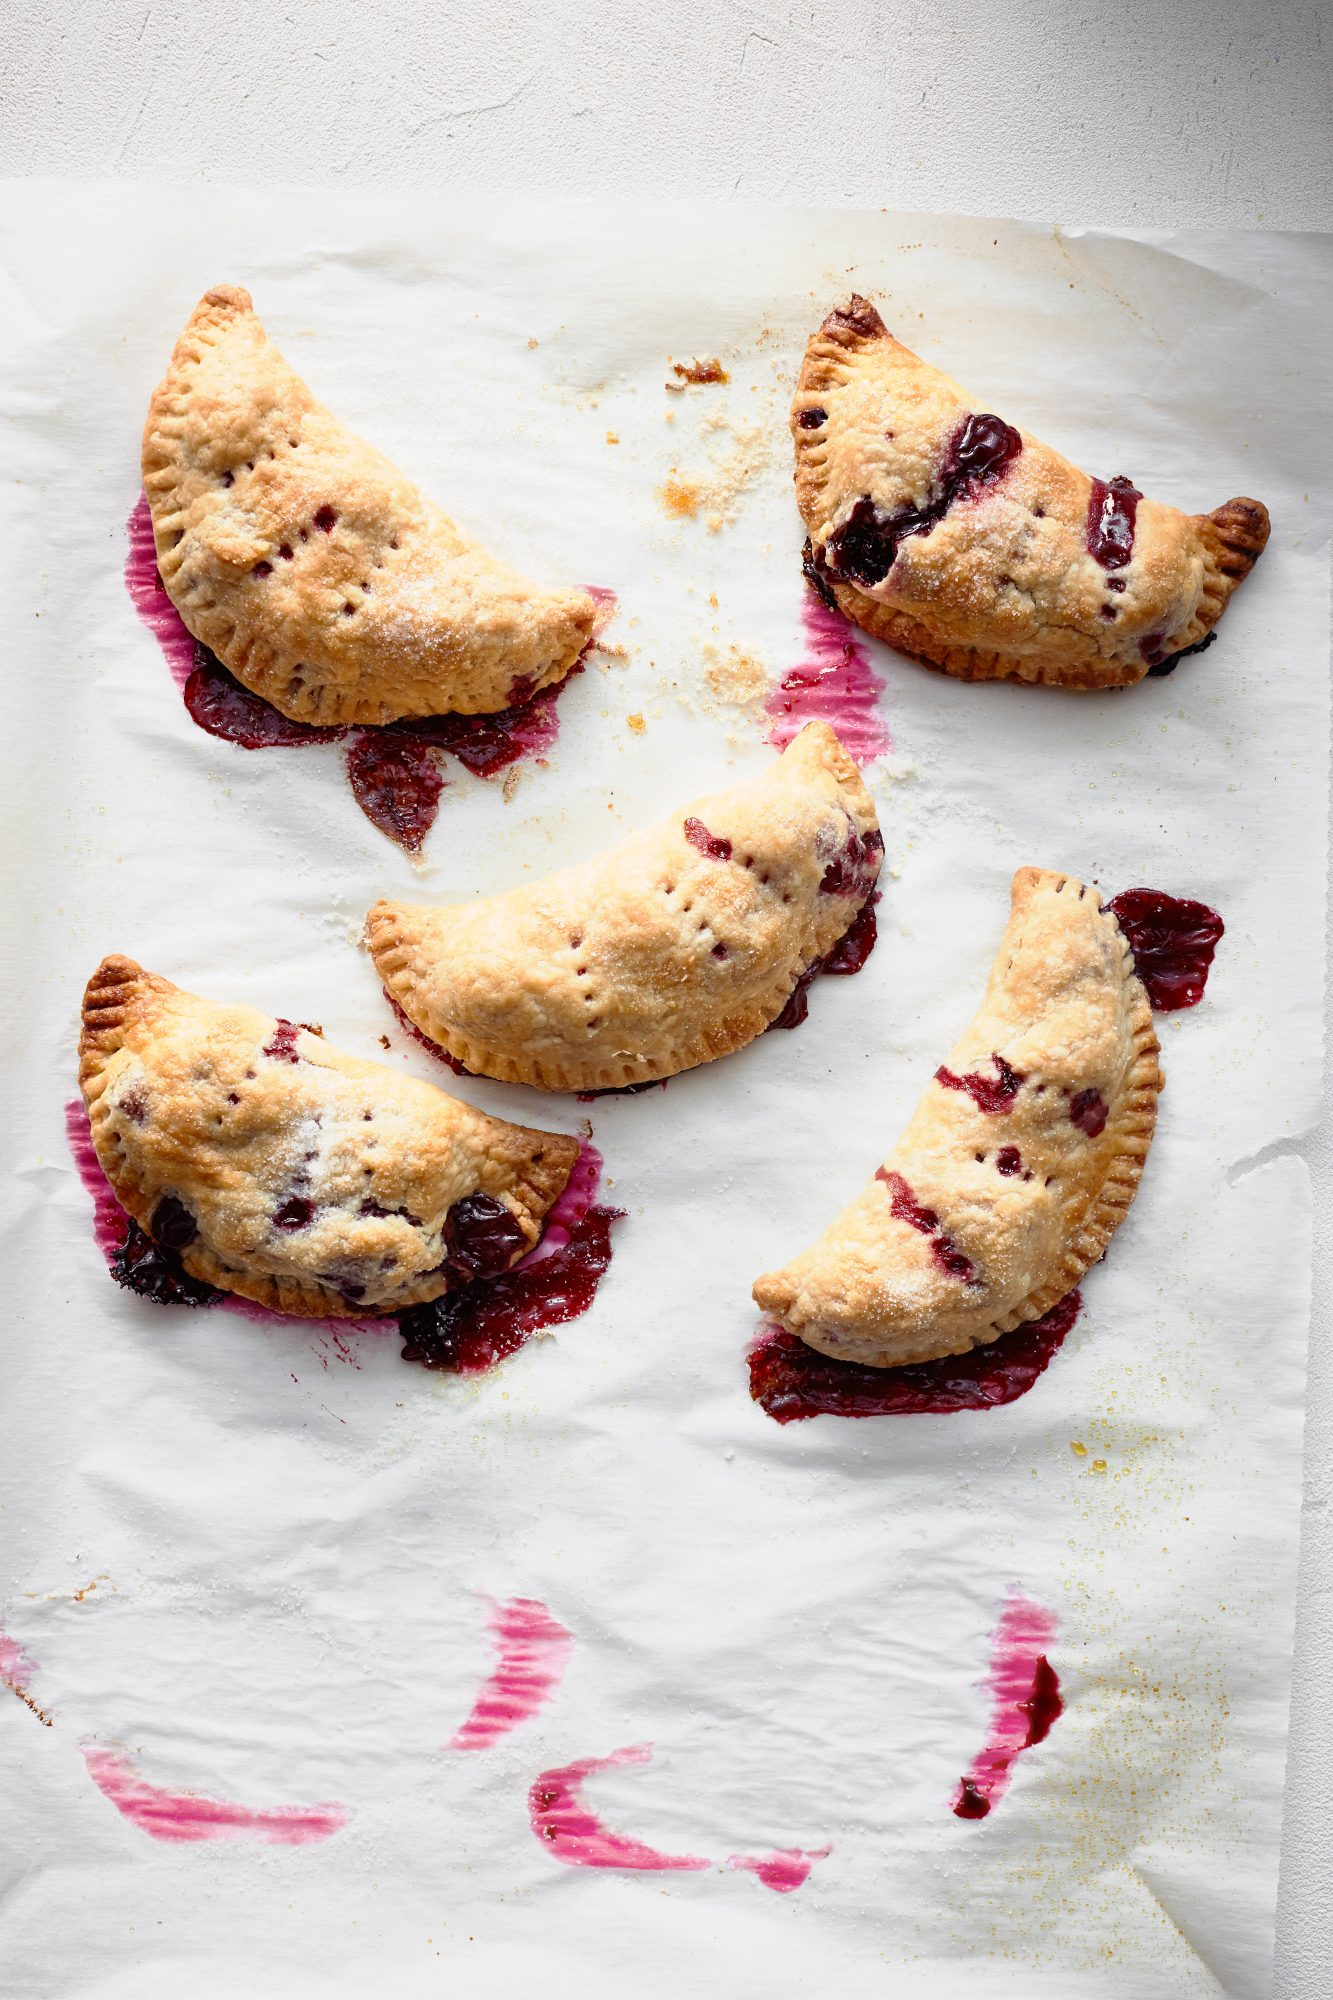 26 Hand Pie Recipes For Every Meal